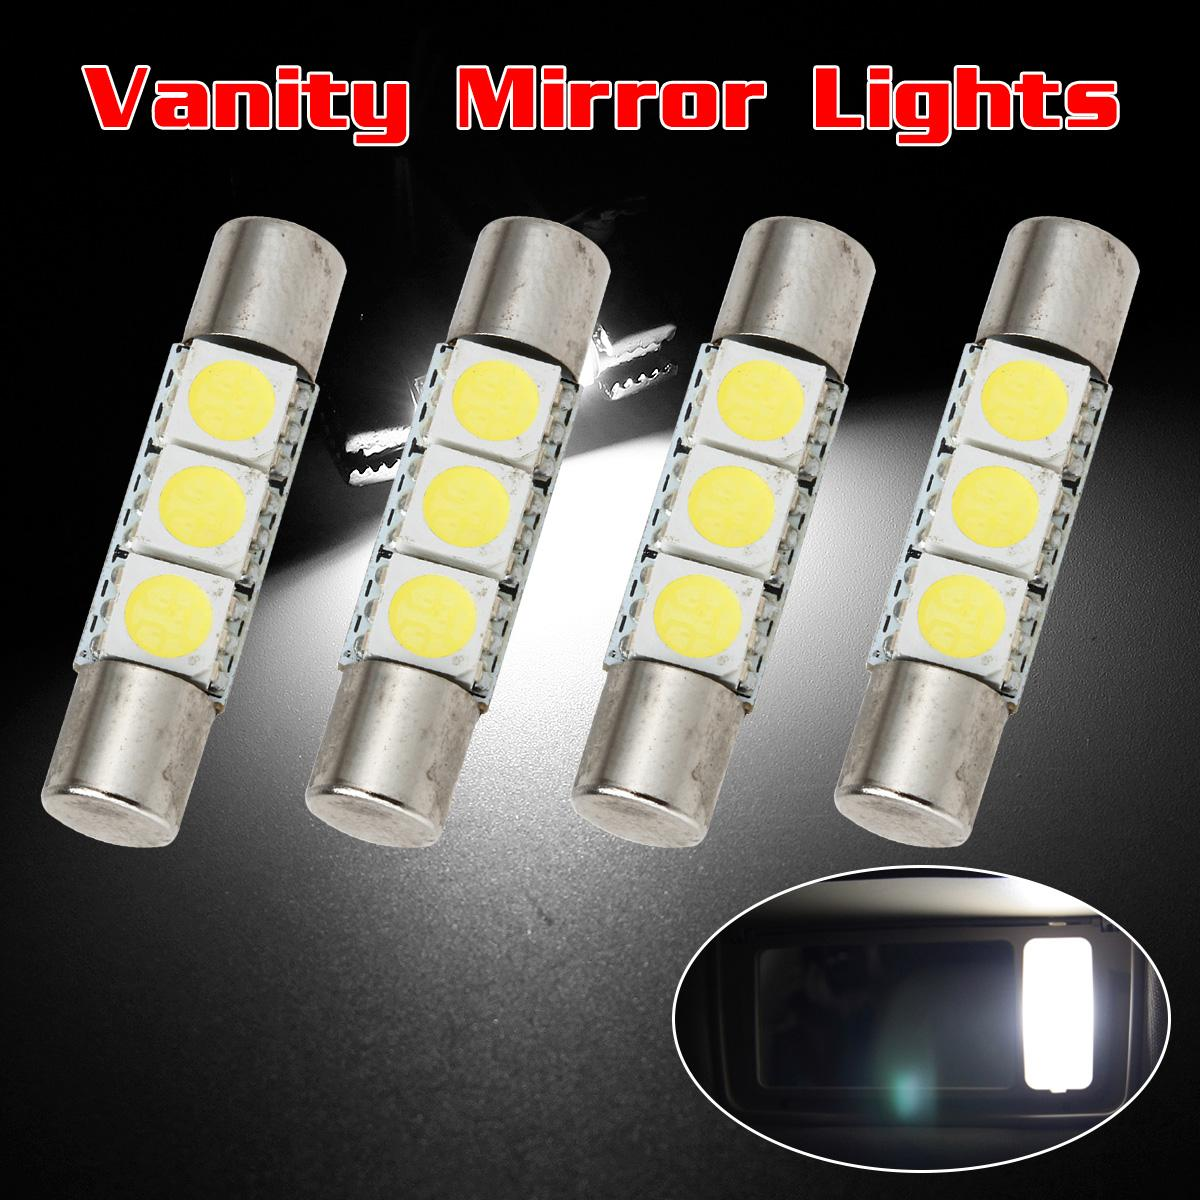 4pcs white 5050 3 led car interior vanity mirror lights sun visor lamps 12v ebay. Black Bedroom Furniture Sets. Home Design Ideas